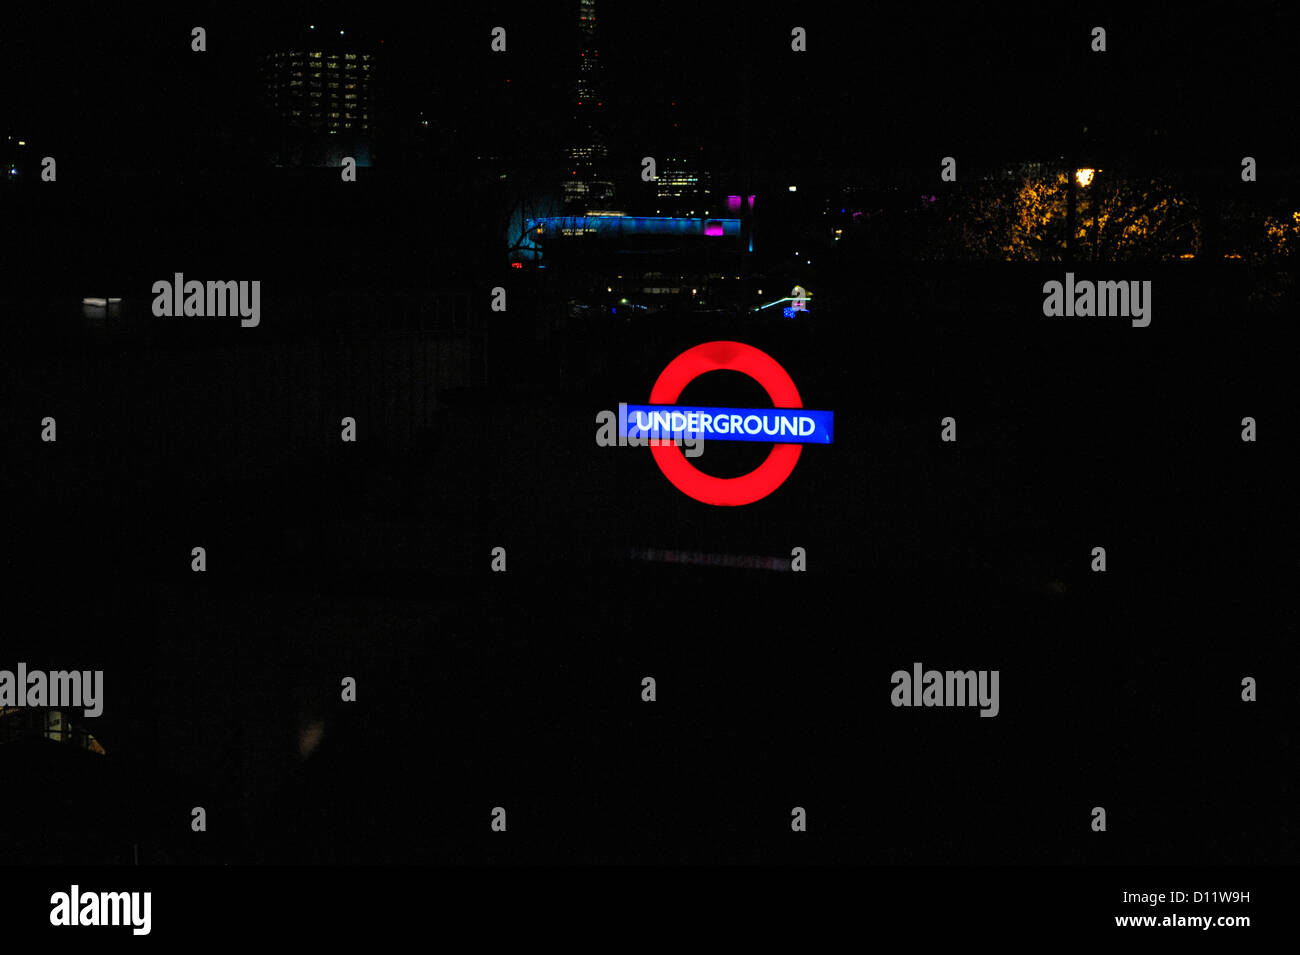 Illuminated London underground tube sign, with dark background for copy space. Some glimmers of the city at night - Stock Image